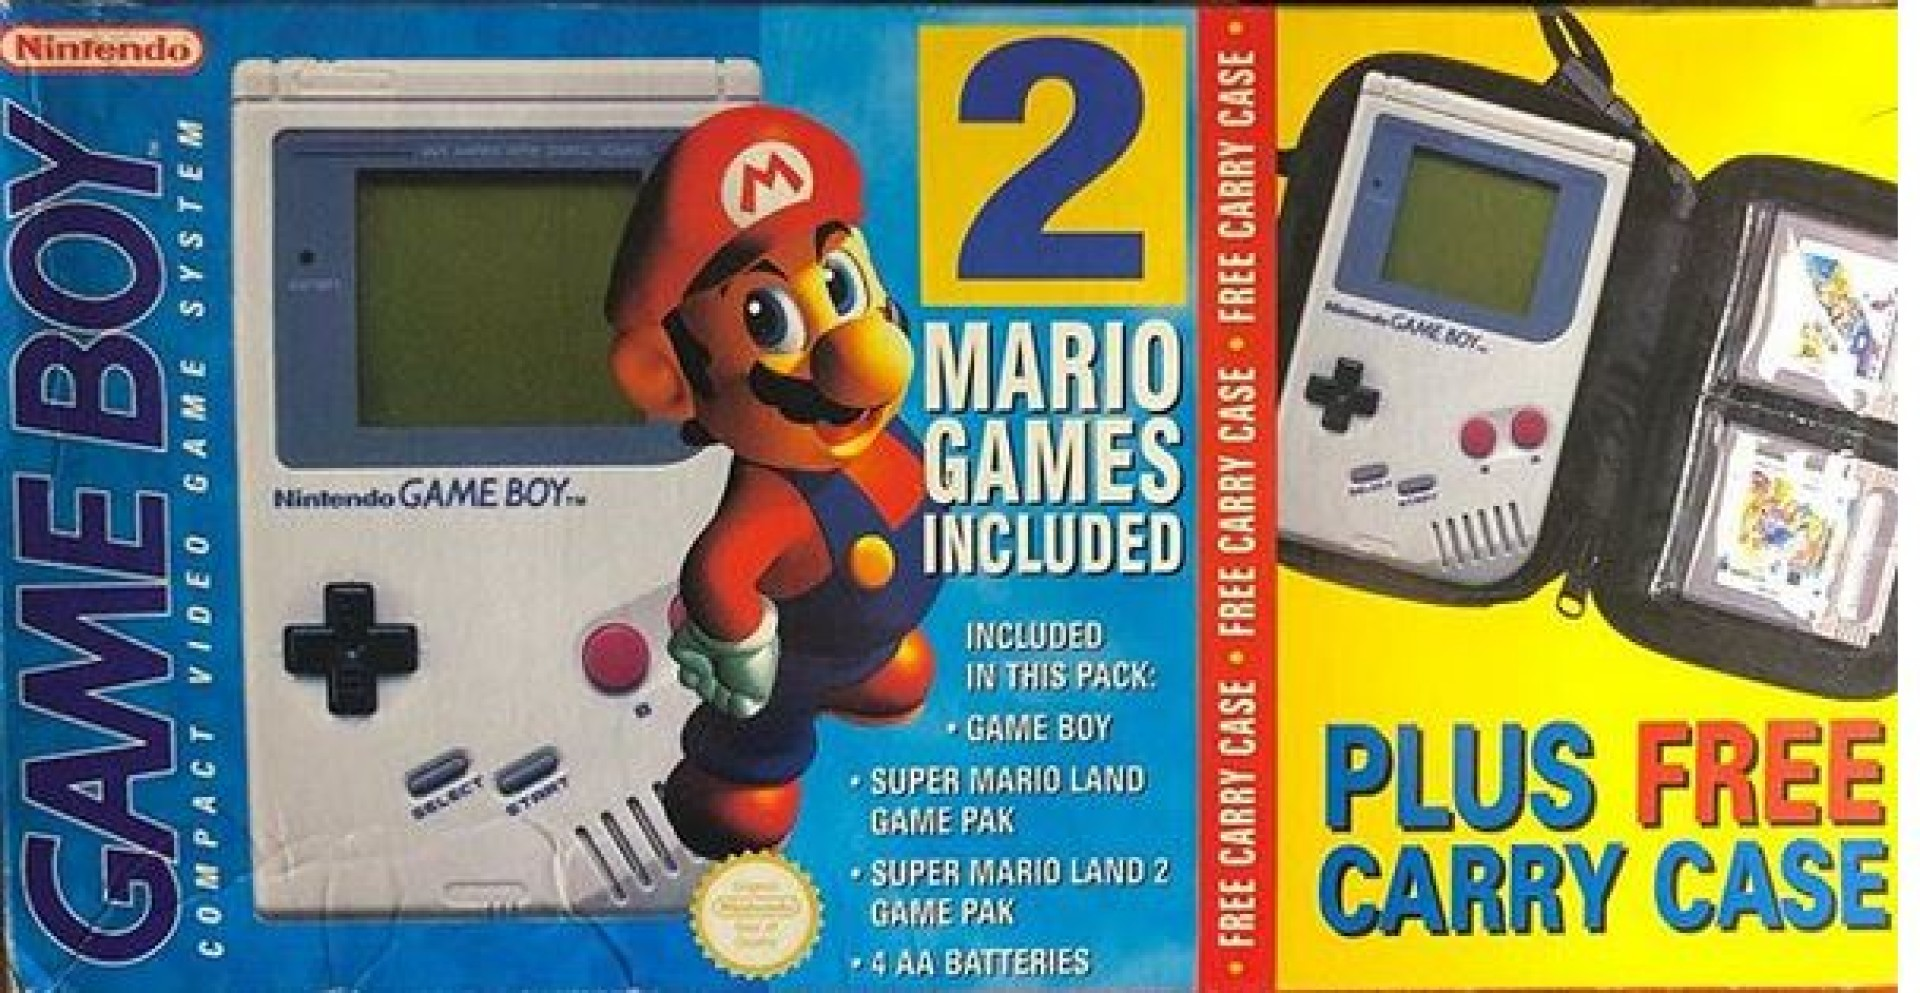 https://consolevariations.com/storage/images/variations/consoles/game-boy-2-mario-game-carry-case-grey-bundle/large/game-boy-2-mario-game-carry-case-grey-bundle-front-1554279306-94.JPG